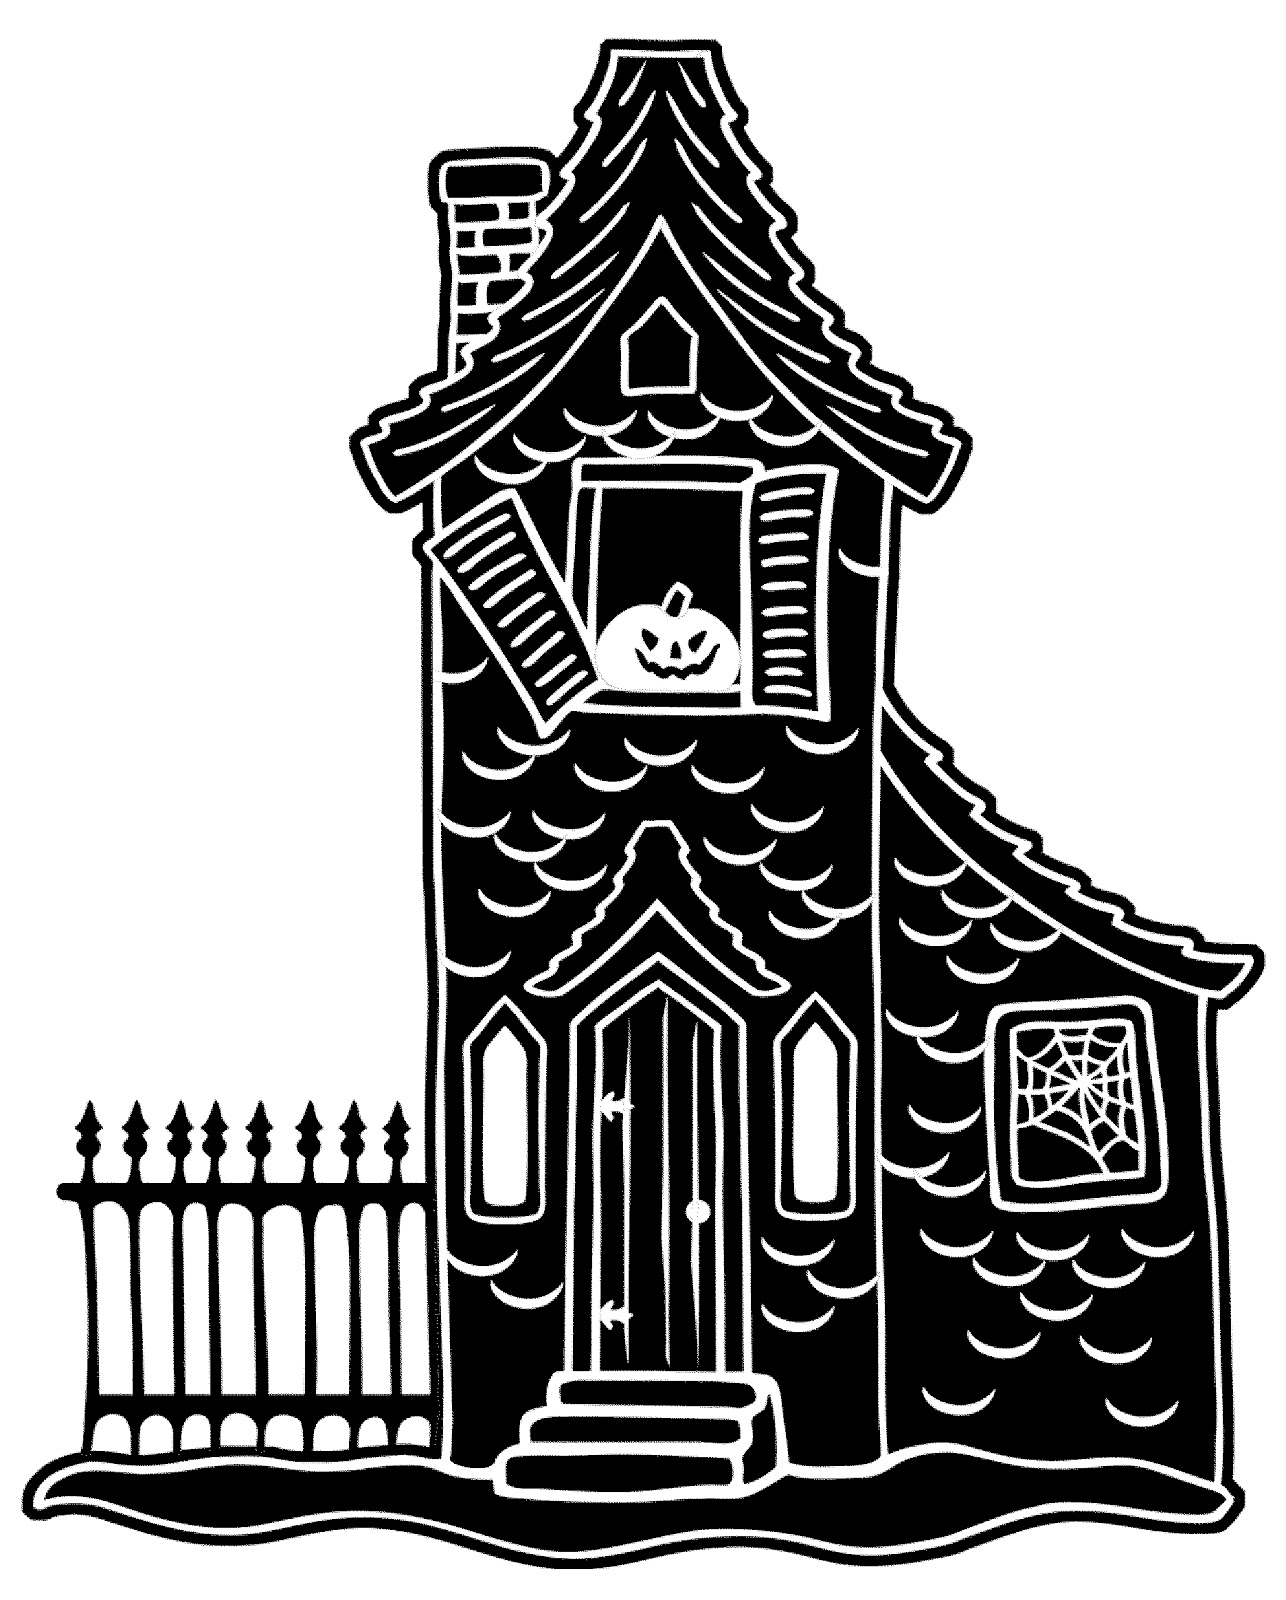 Haunted House Clipart Clipart Panda Free-Haunted House Clipart Clipart Panda Free Clipart Images-11